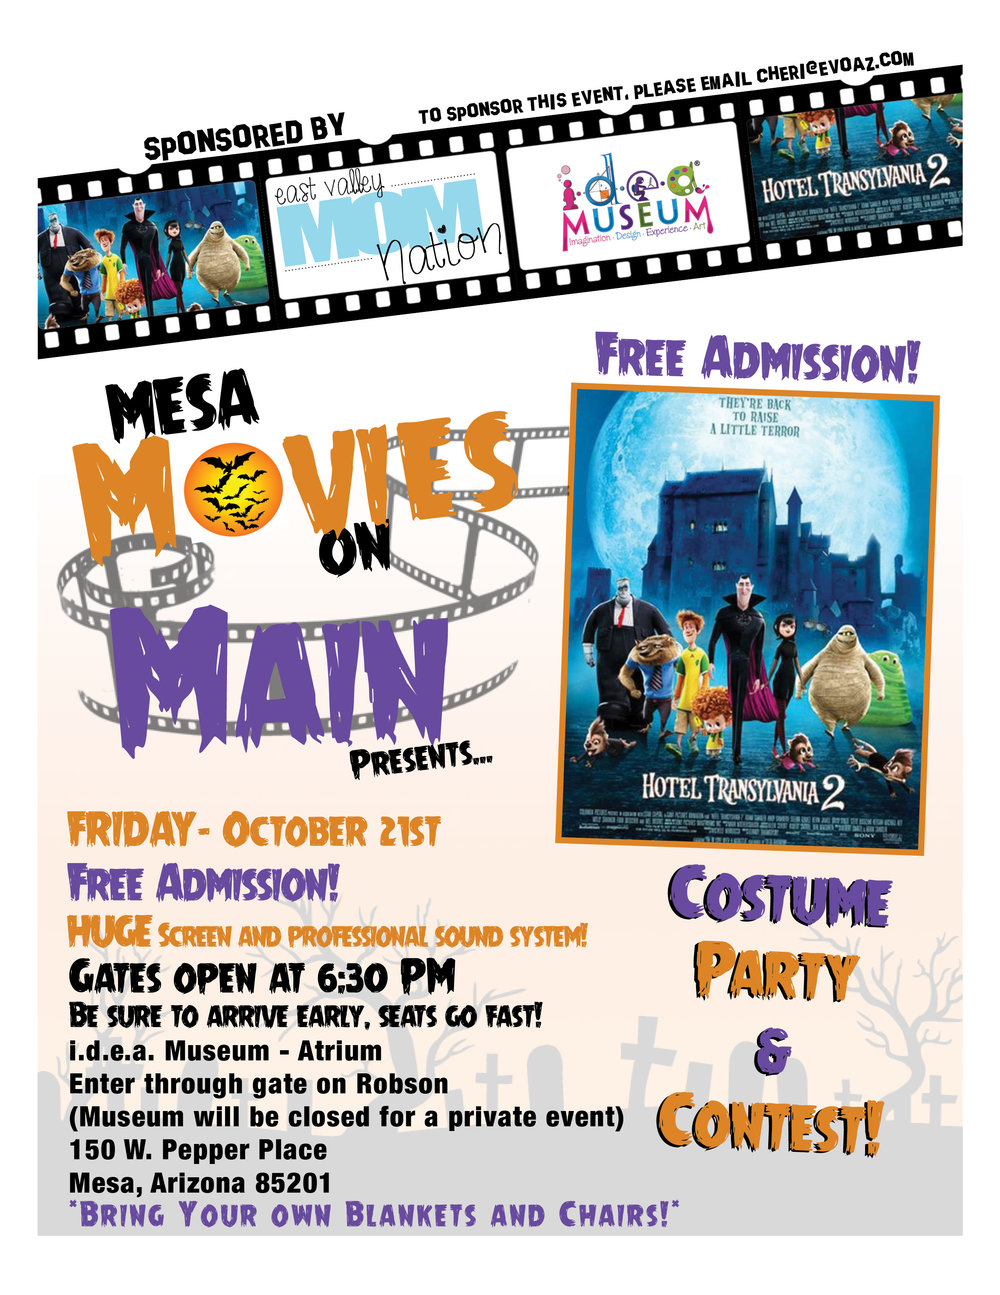 Join East Valley Mom Nation and Team Evolution for our October Movies on Main! We will be having a costume party and contest so dress your best!  Please arrive at 6:30 sharp to ensure you find the best seats to fit your need! **NEW LOCATION*** This event will be held at the Idea Museum, in the Atrium!!! Please be sure to enter off Robson! The museum will be closed for a private event.  Our new location is closed off, has an amazing grass area, and will be perfect for our HUGE screen and professional sound system!  FREE Event!!!!  Bring a blanket or chair so you can get comfy while enjoying Hotel Transylvania 2!!